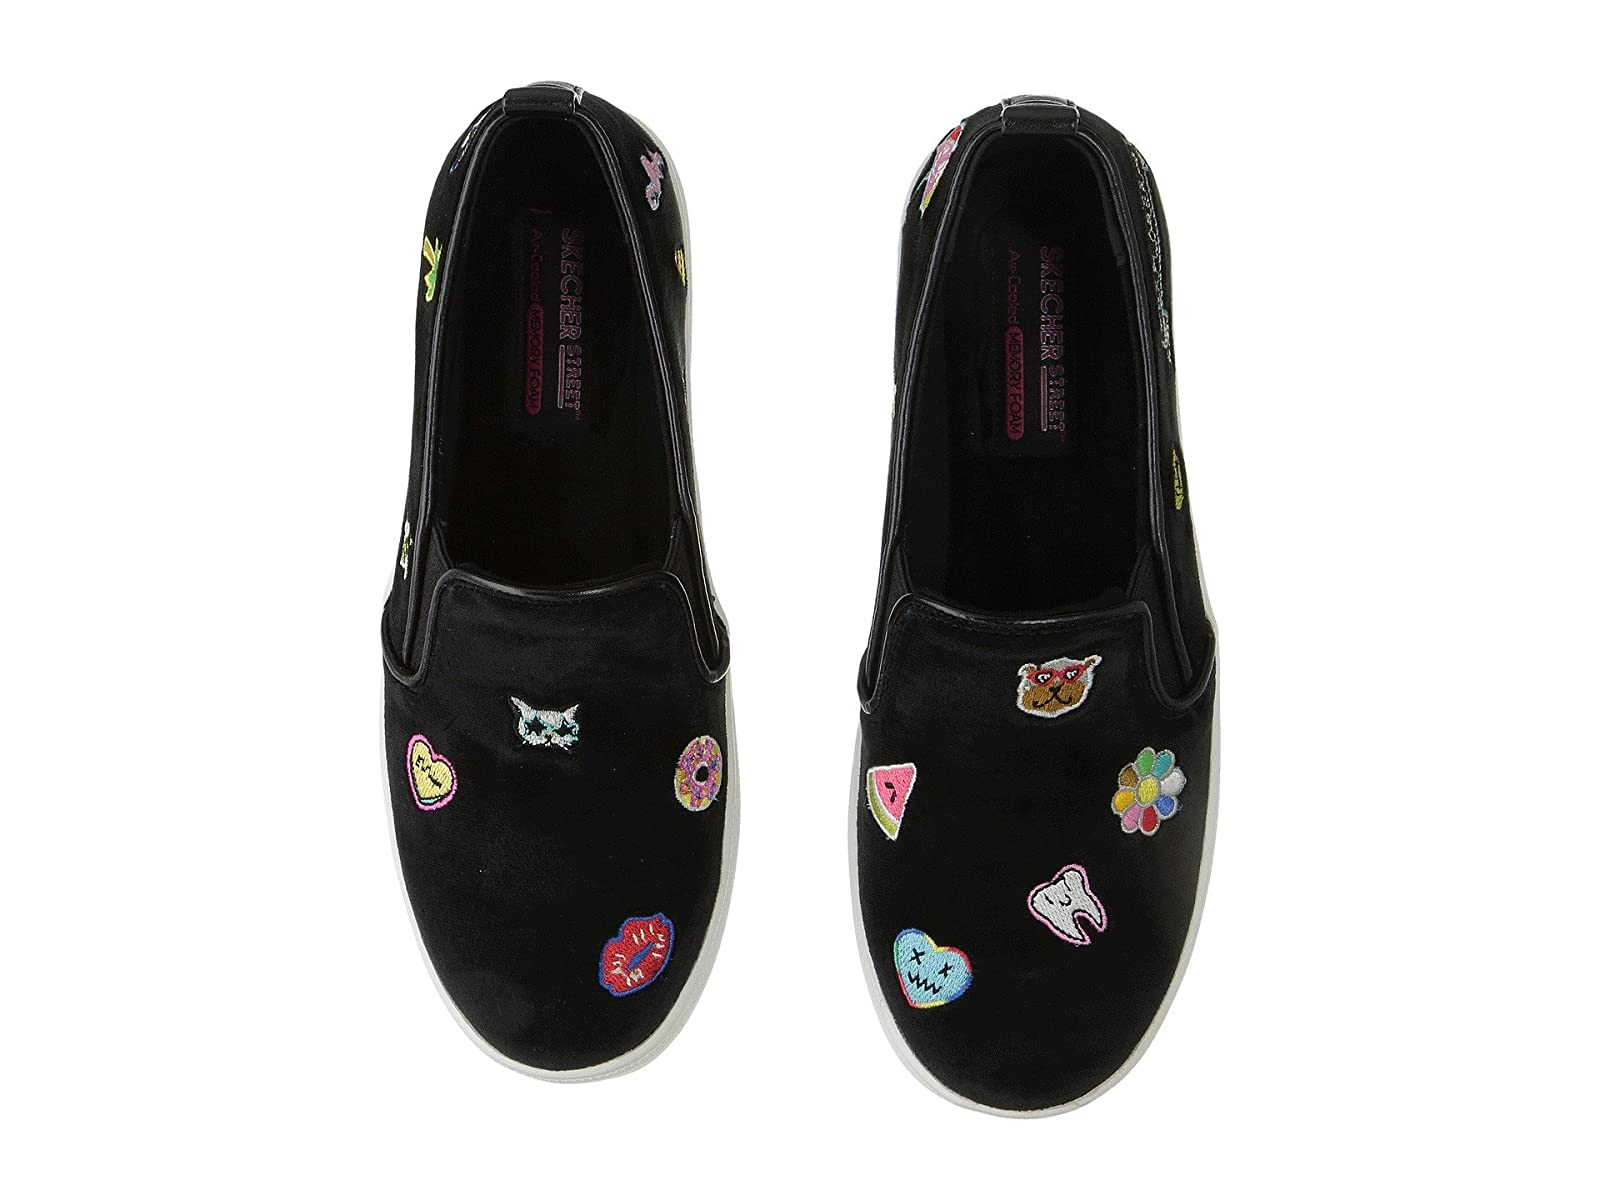 SKECHERS Double Up - E Moe GCheap and distinctive eye-catching shoes